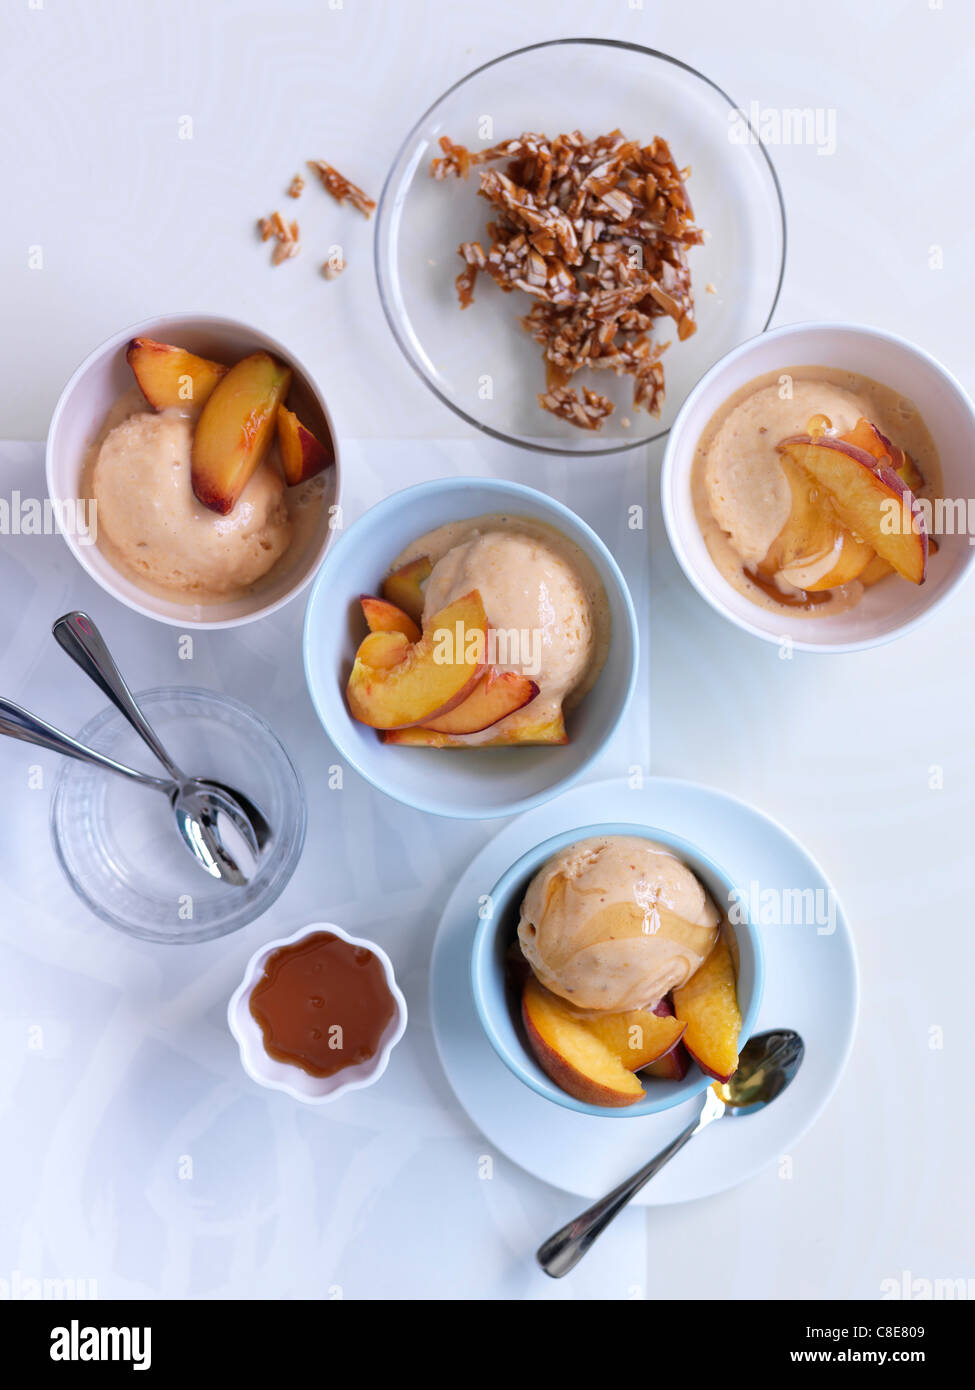 Dishes of ice cream with peaches - Stock Image